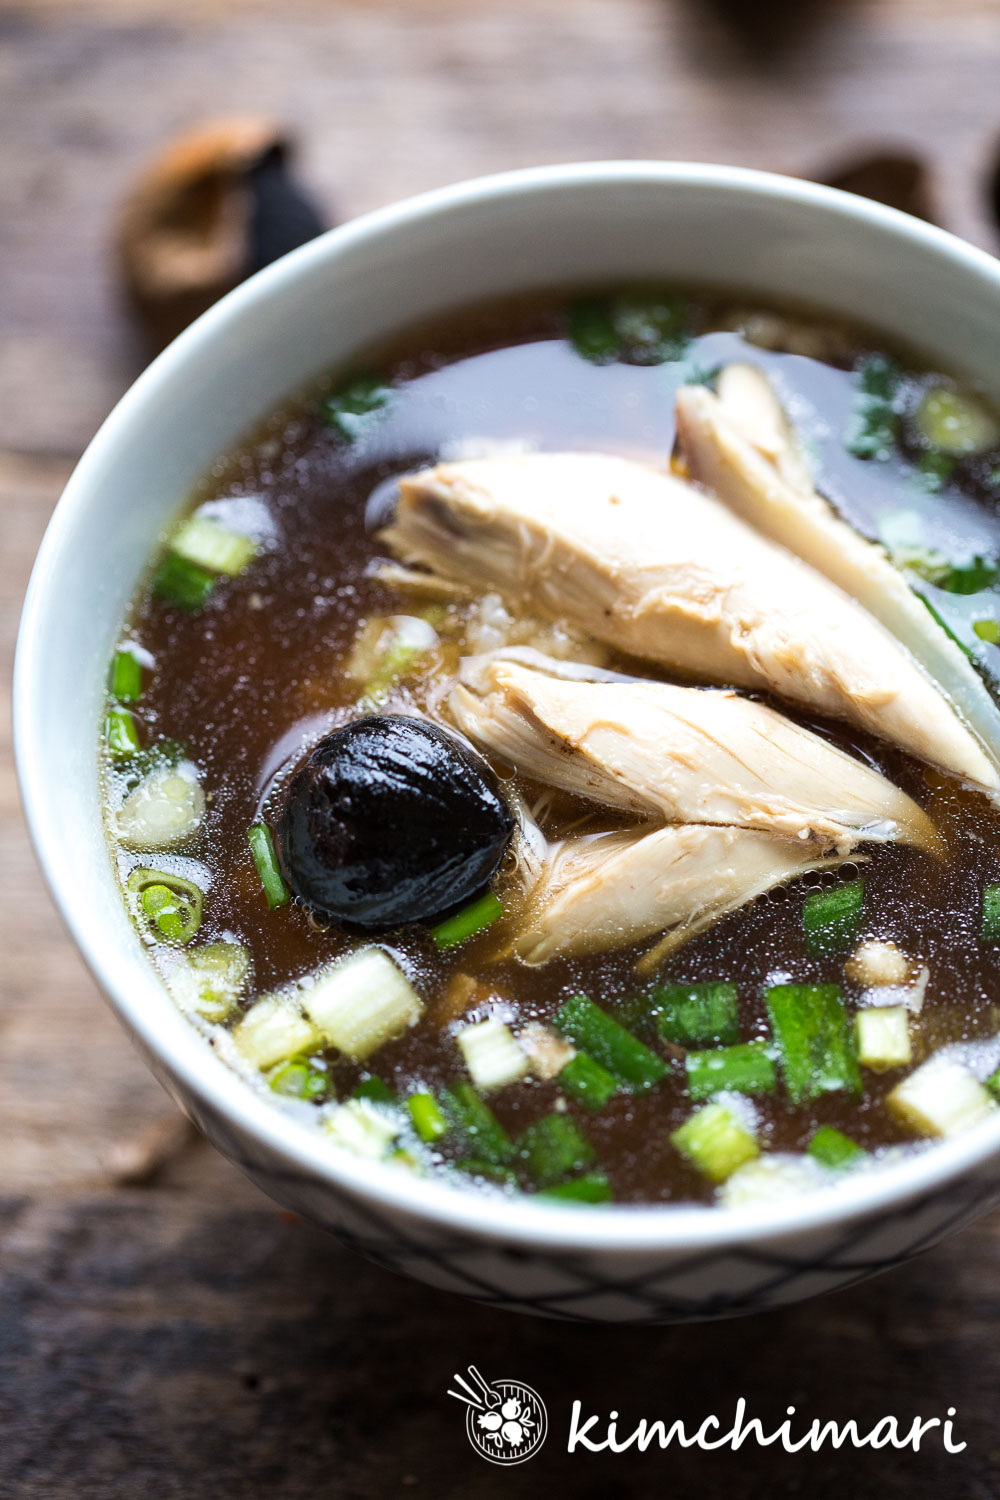 Korean Chicken soup with torn meats in bowl with Black Garlic and green onions